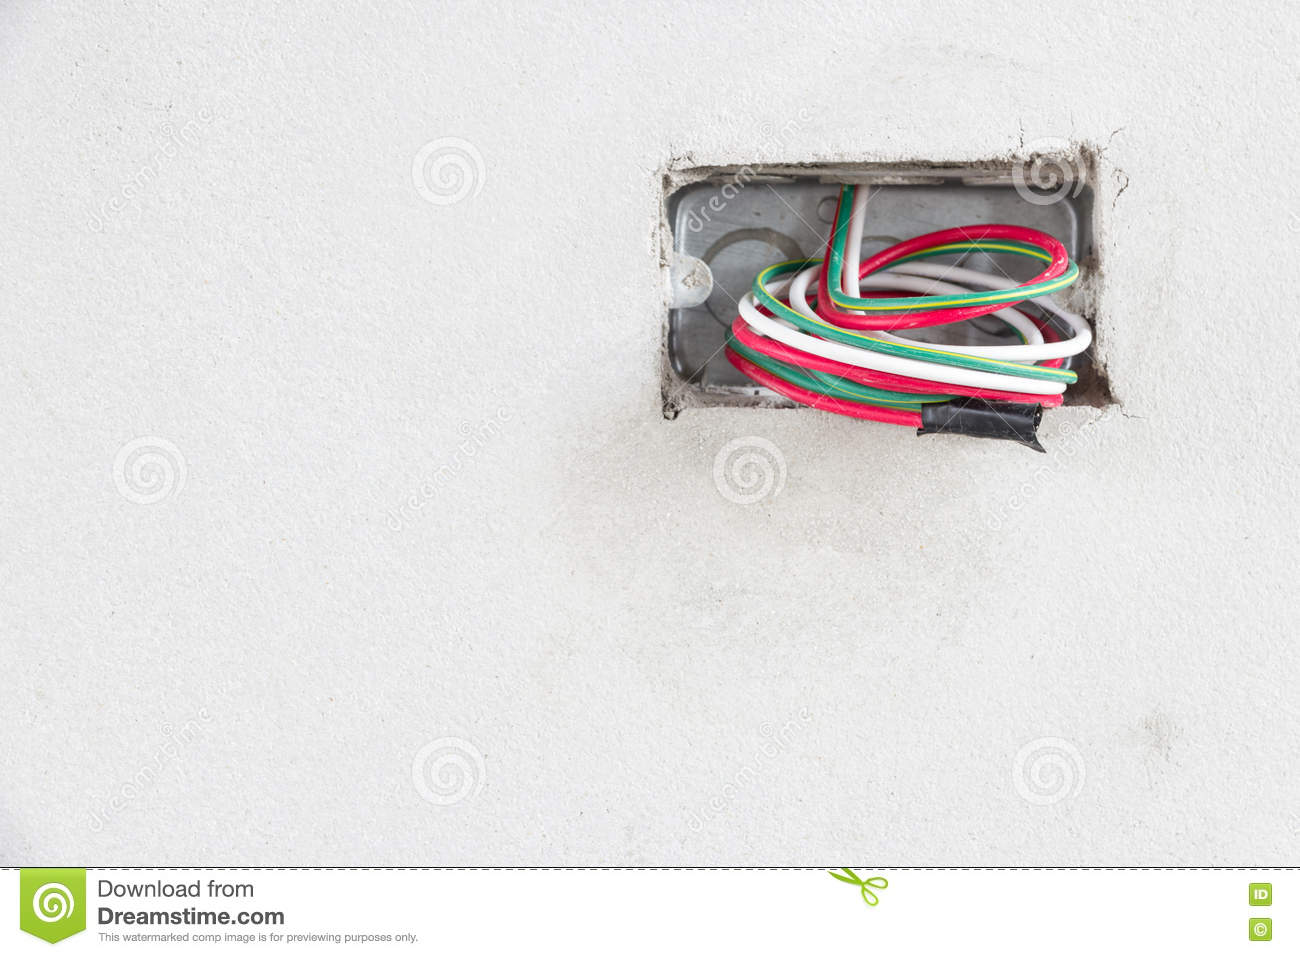 Swell Piping And Electric Stock Image Image Of Fiber Electrical 71447993 Wiring Database Pengheclesi4X4Andersnl